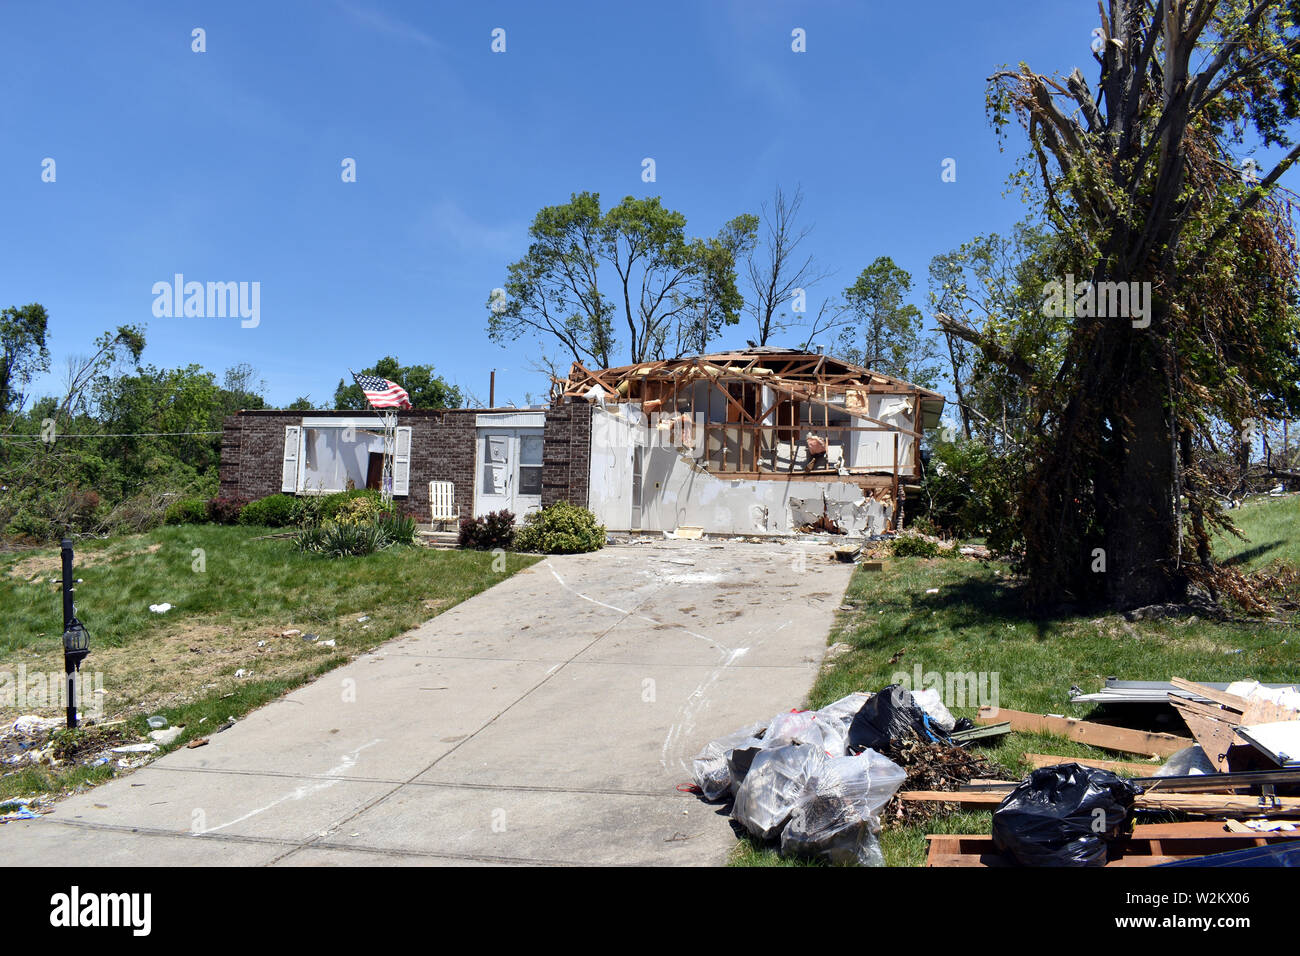 Tornado damage that occurred on the 27ty of May 2019 in the